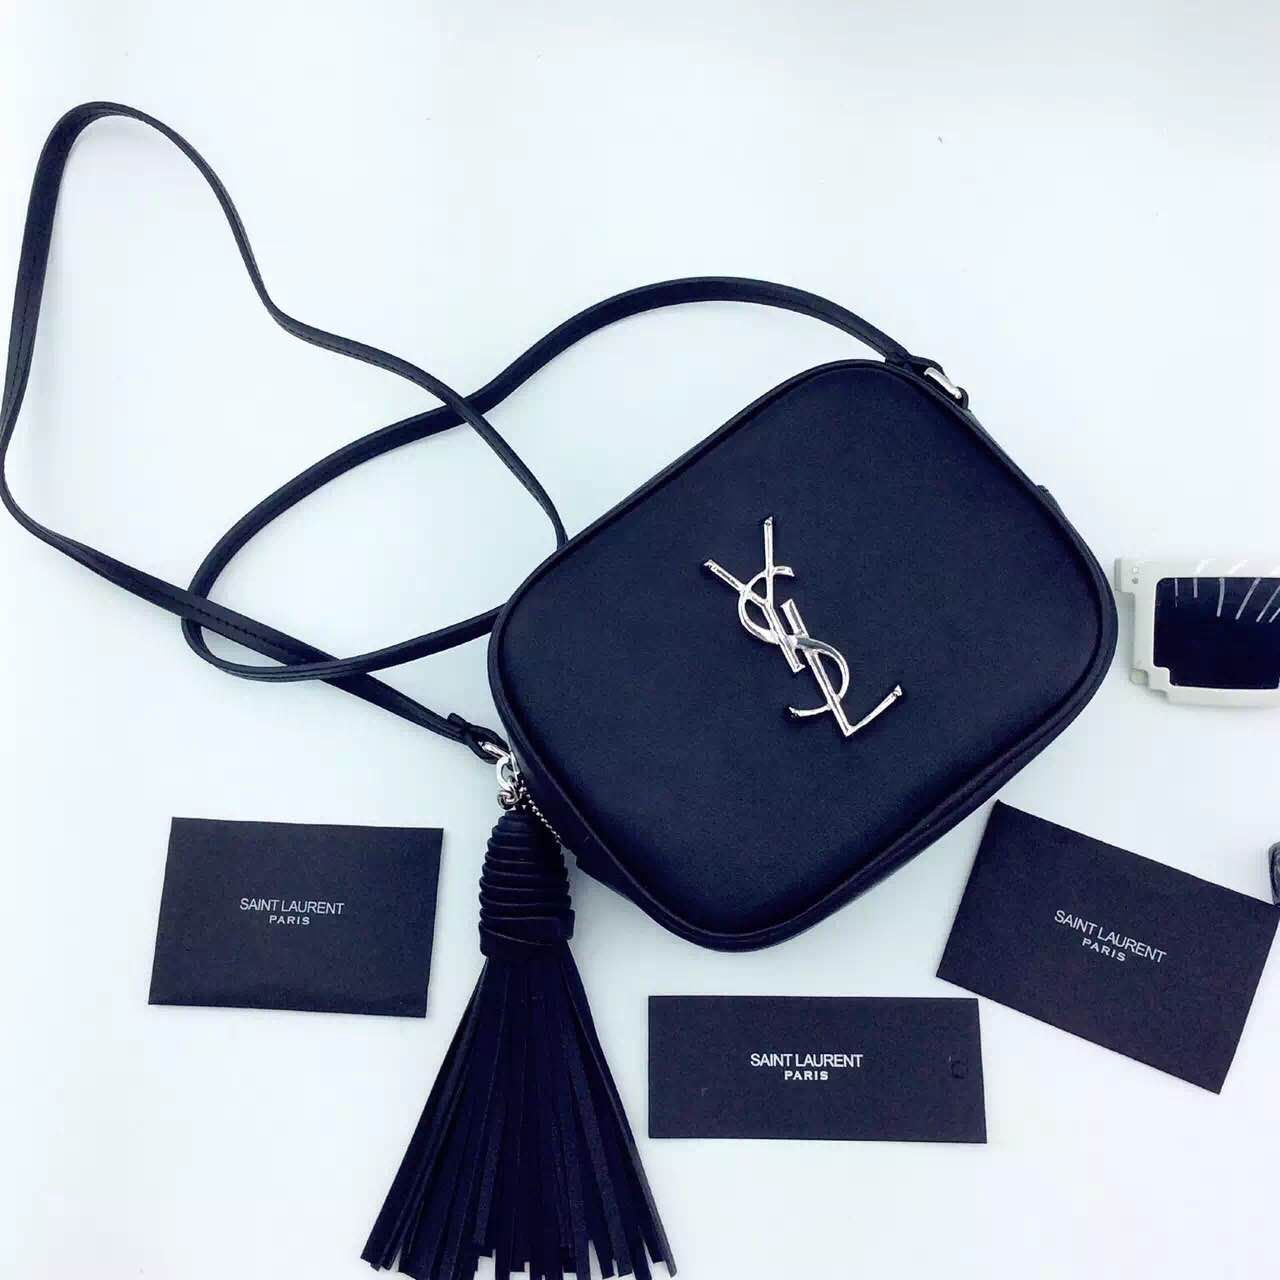 New Arrival!2016 Cheap YSL Out Sale with Free Shipping-Saint Laurent  Monogram Medium Blogger Bag in Black Leather 82c7d4a94593a